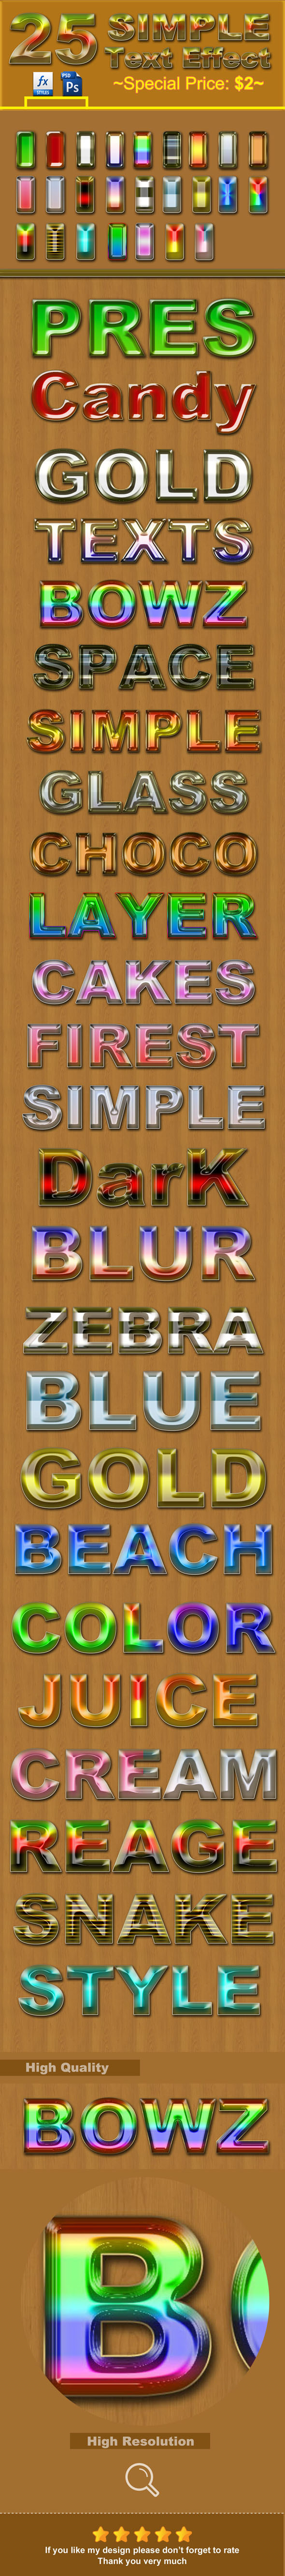 25 Simple Photoshop Text Styles - Text Effects Styles